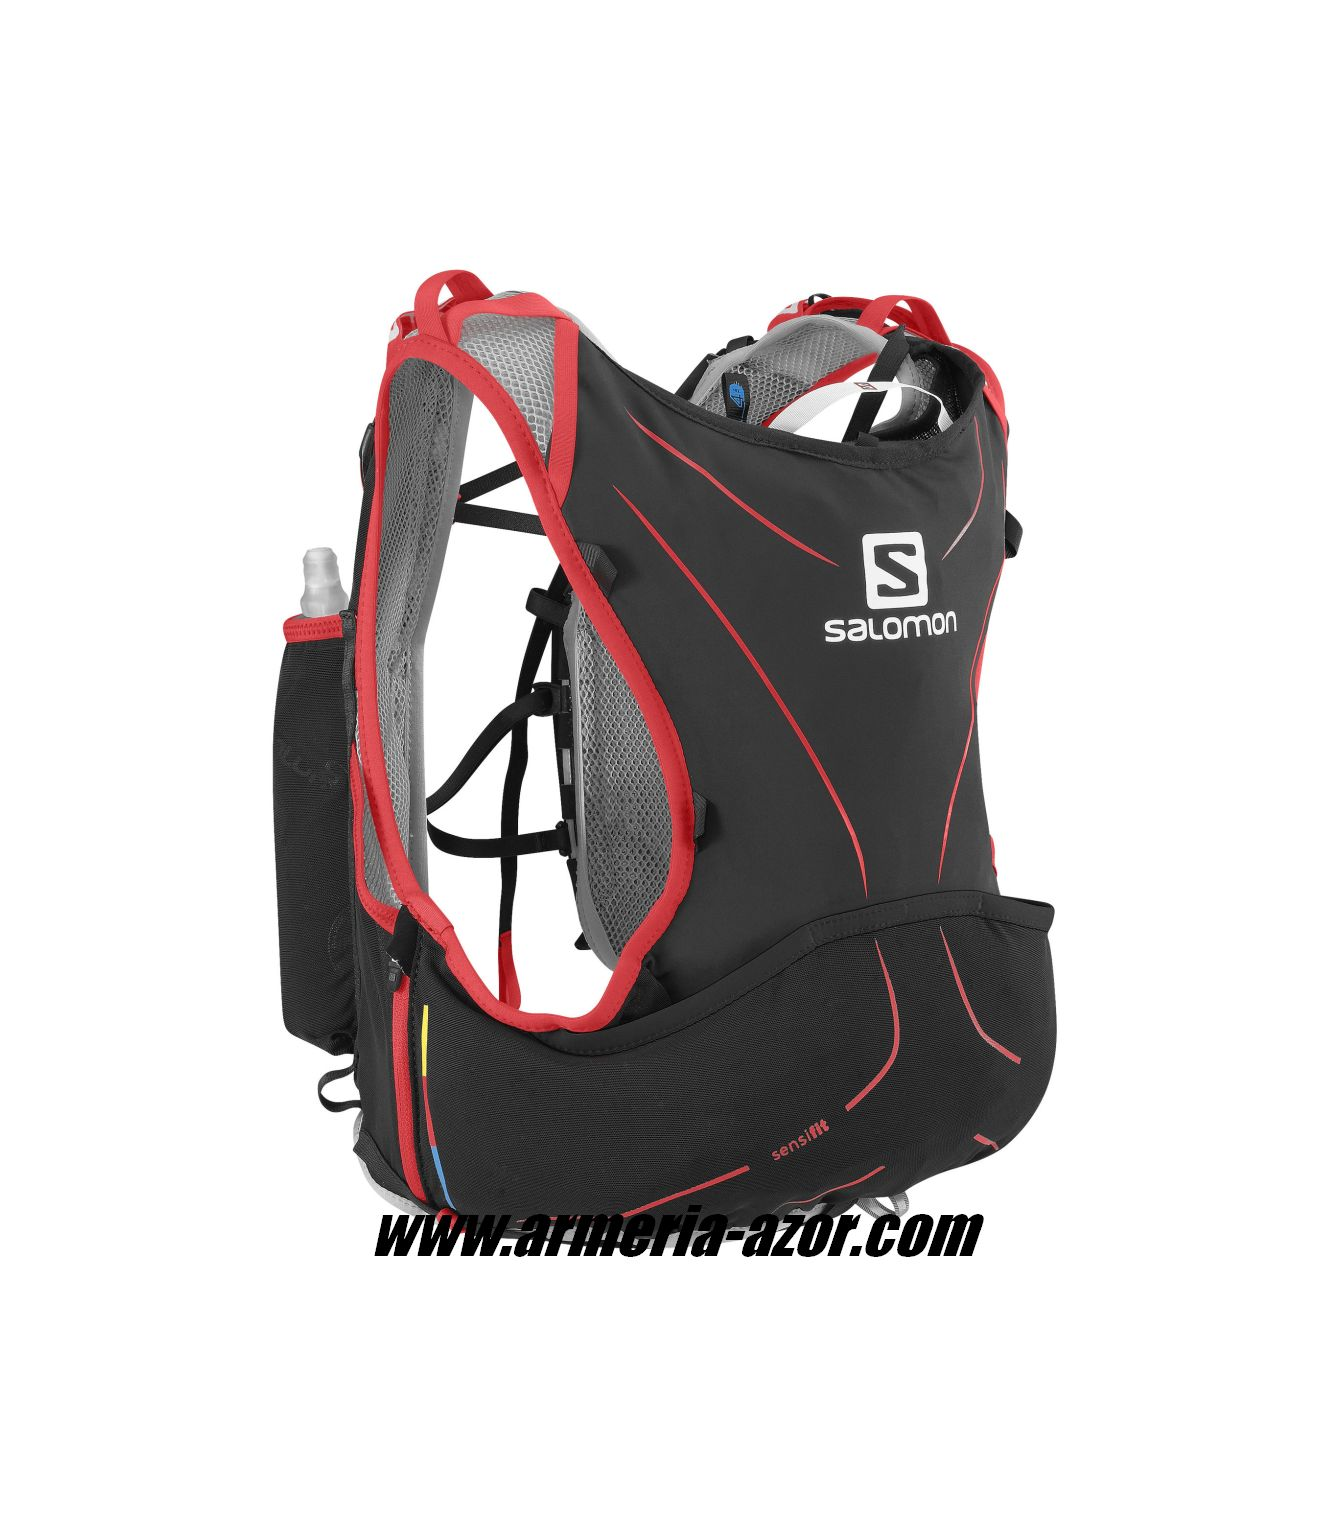 Mochila Salomon Advanced Skin Lab Hydro 5 Set- Portes Gratis